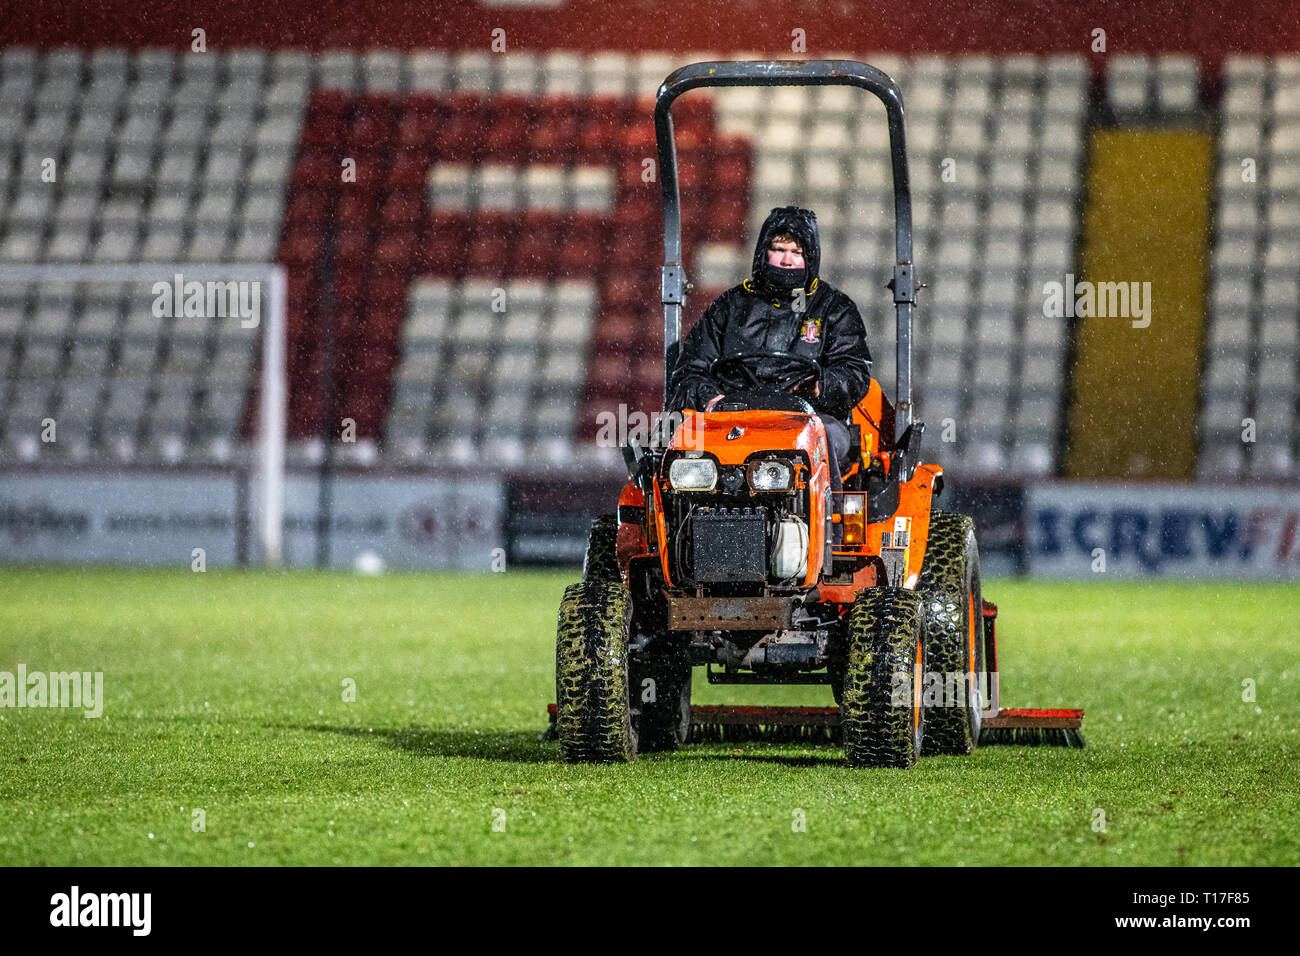 Groundsman maintaining football pitch in rain - Stock Image